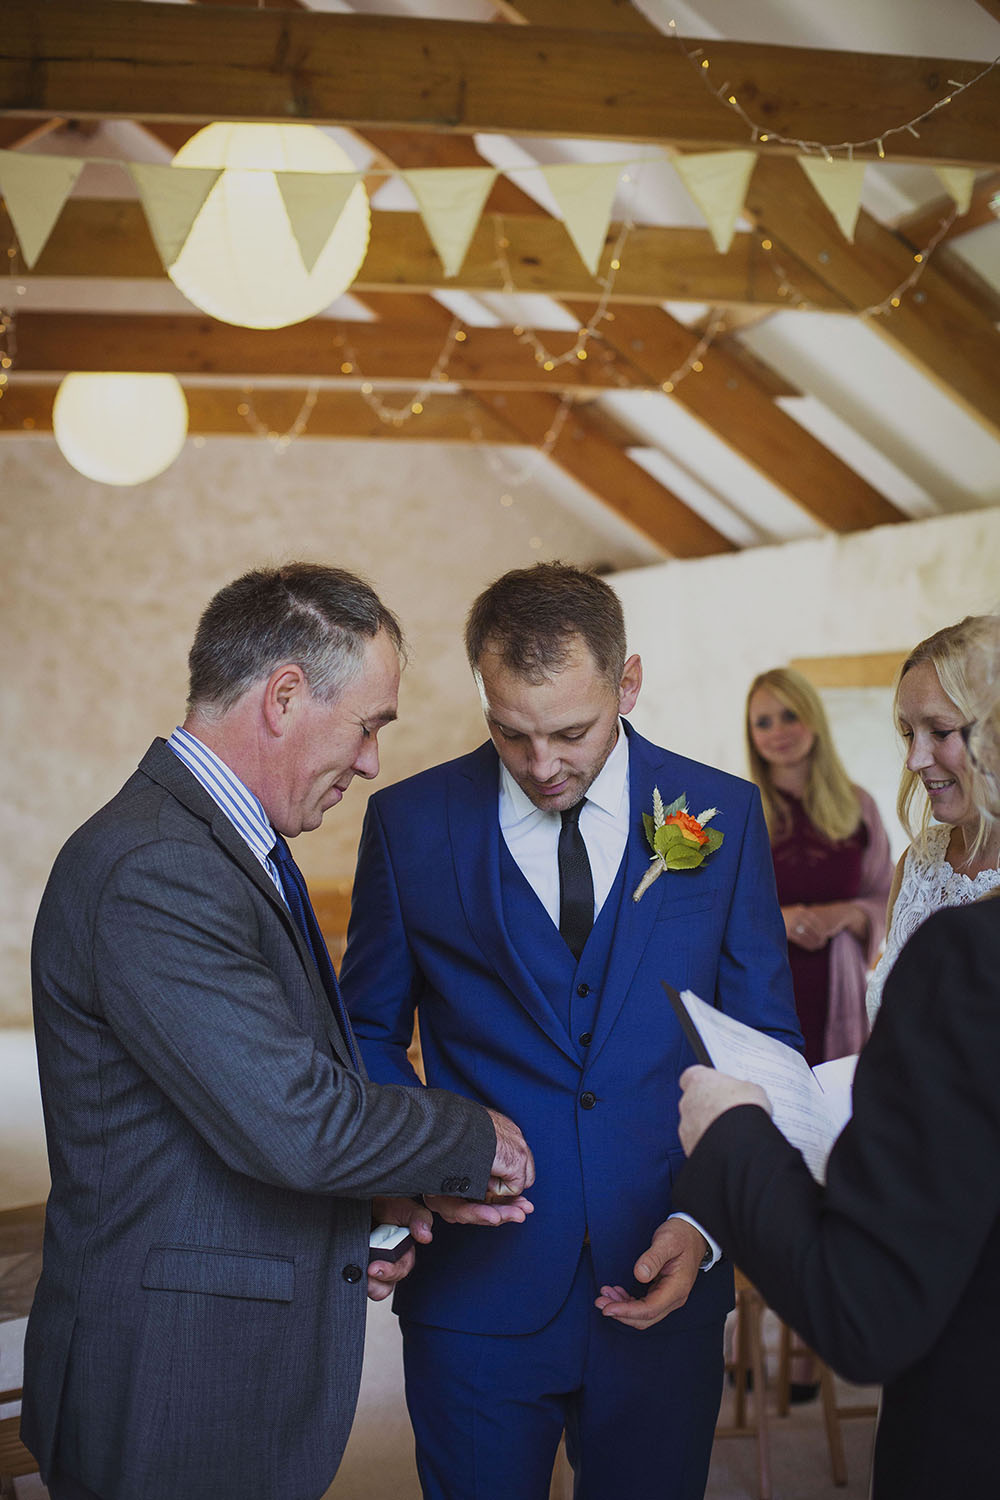 groom receiving rings from ring bearer at nantwen